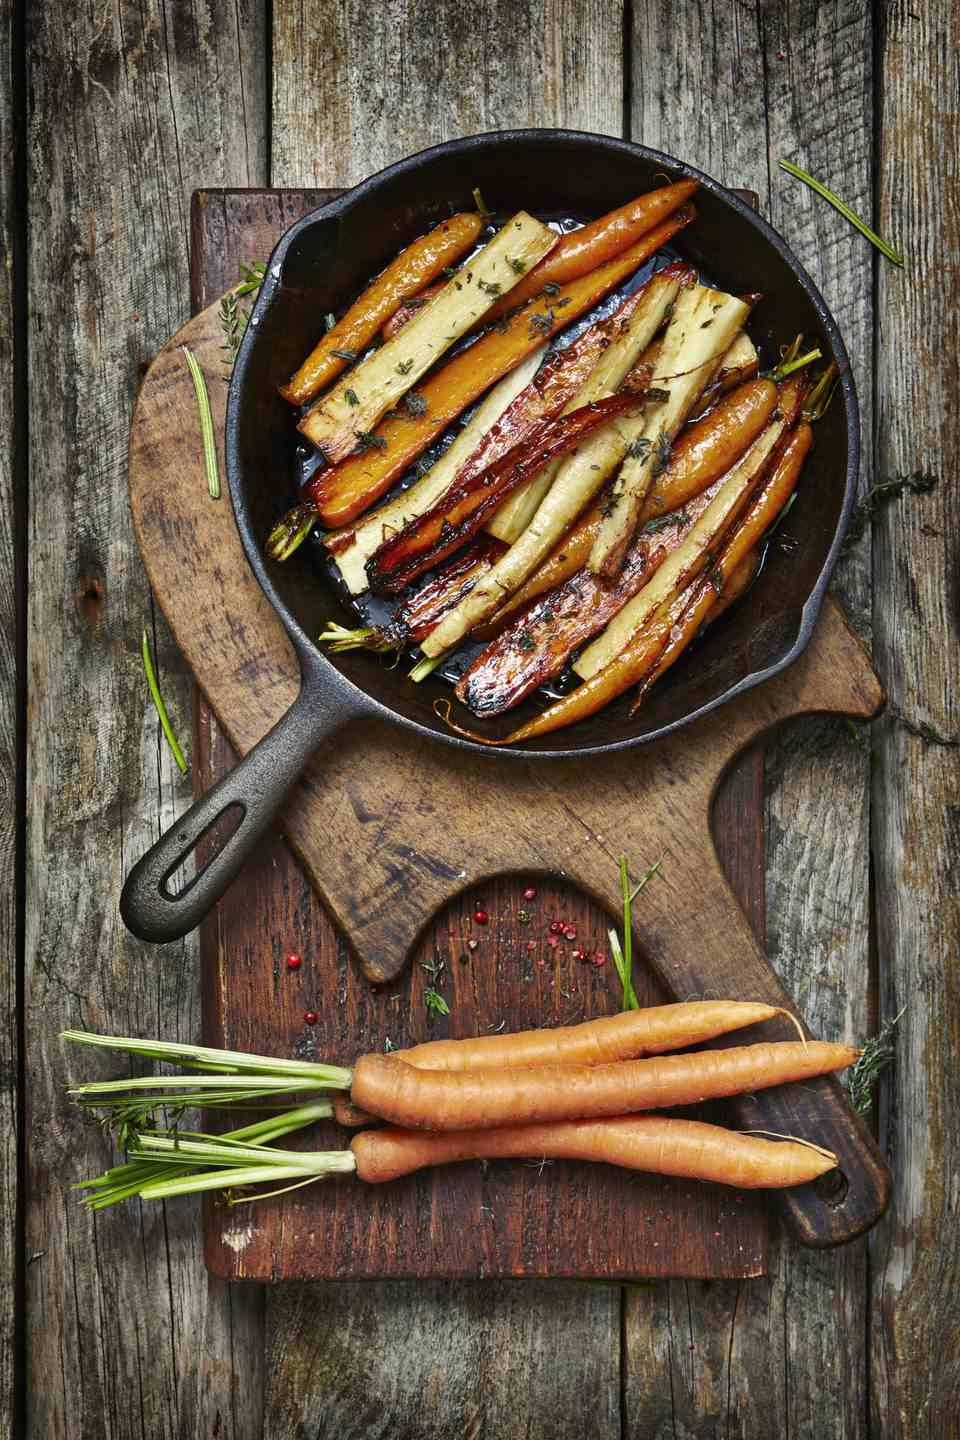 Honey roasted carrots and parsnips in a pan